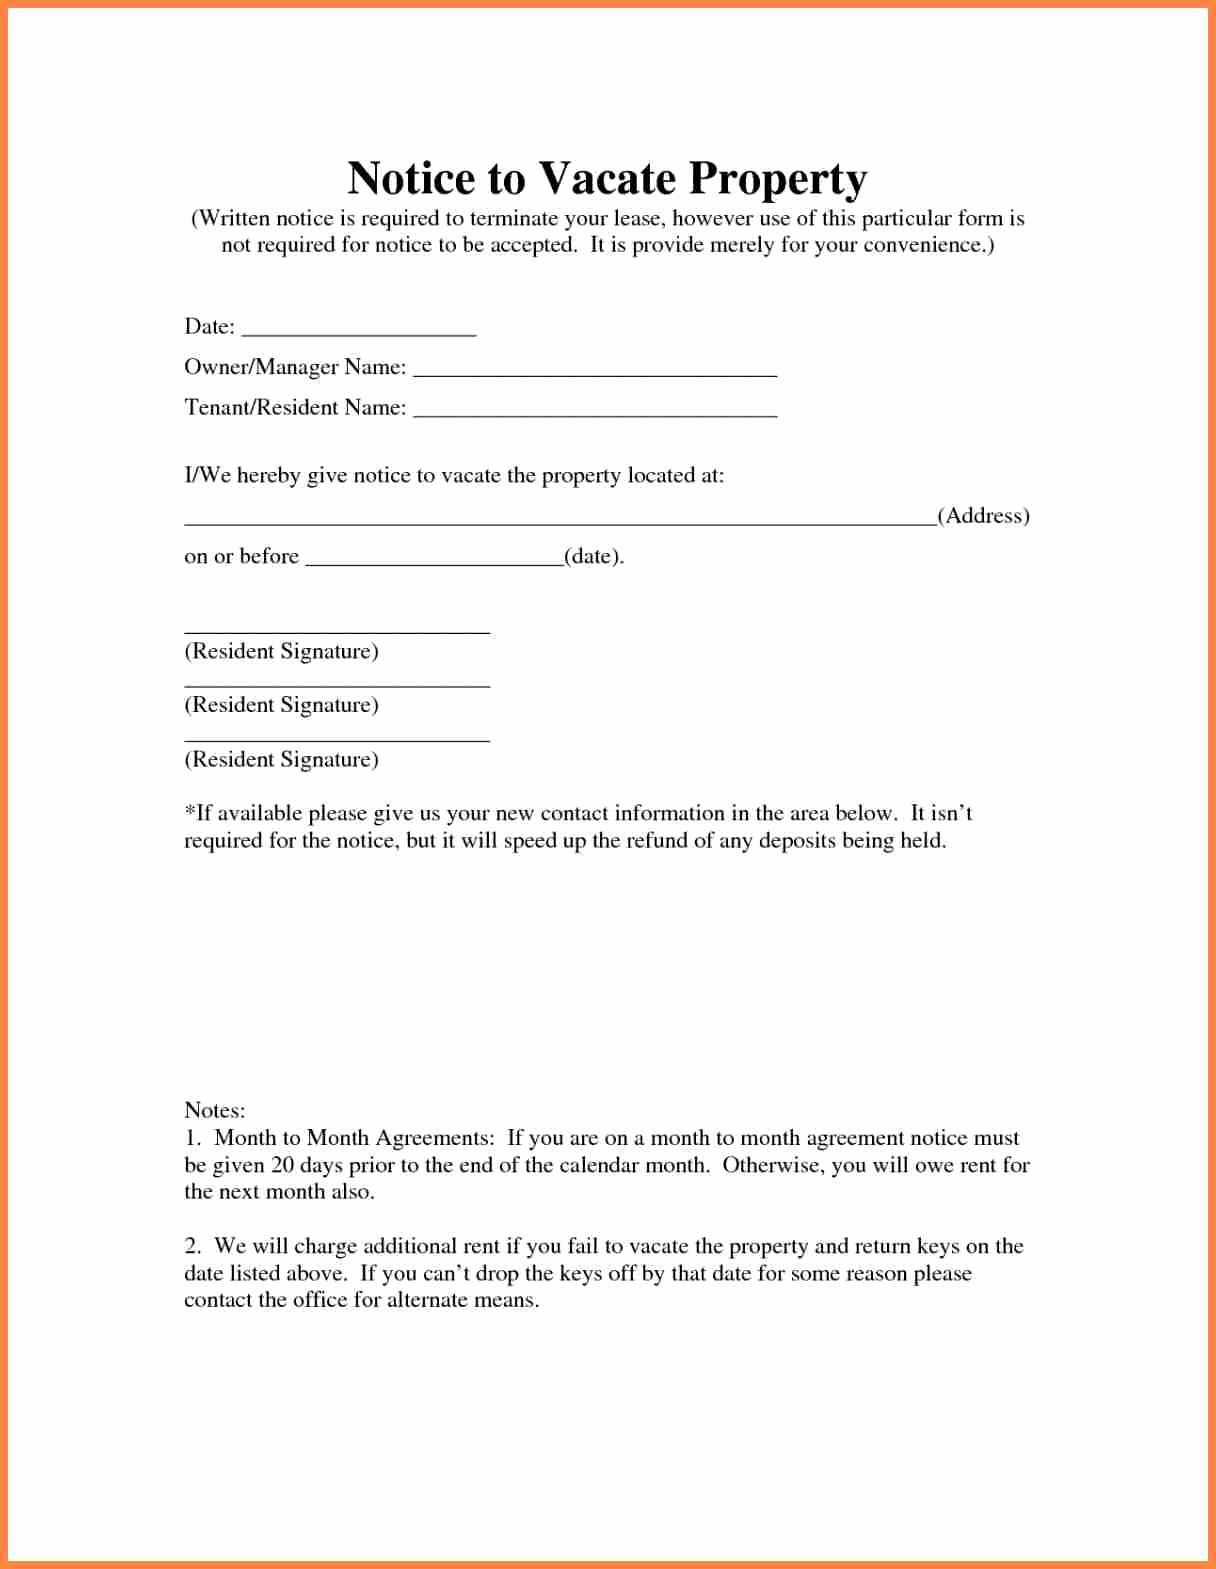 Sample Letter to Tenant Lovely 10 Sample Letter Notice to Vacate Rental Property